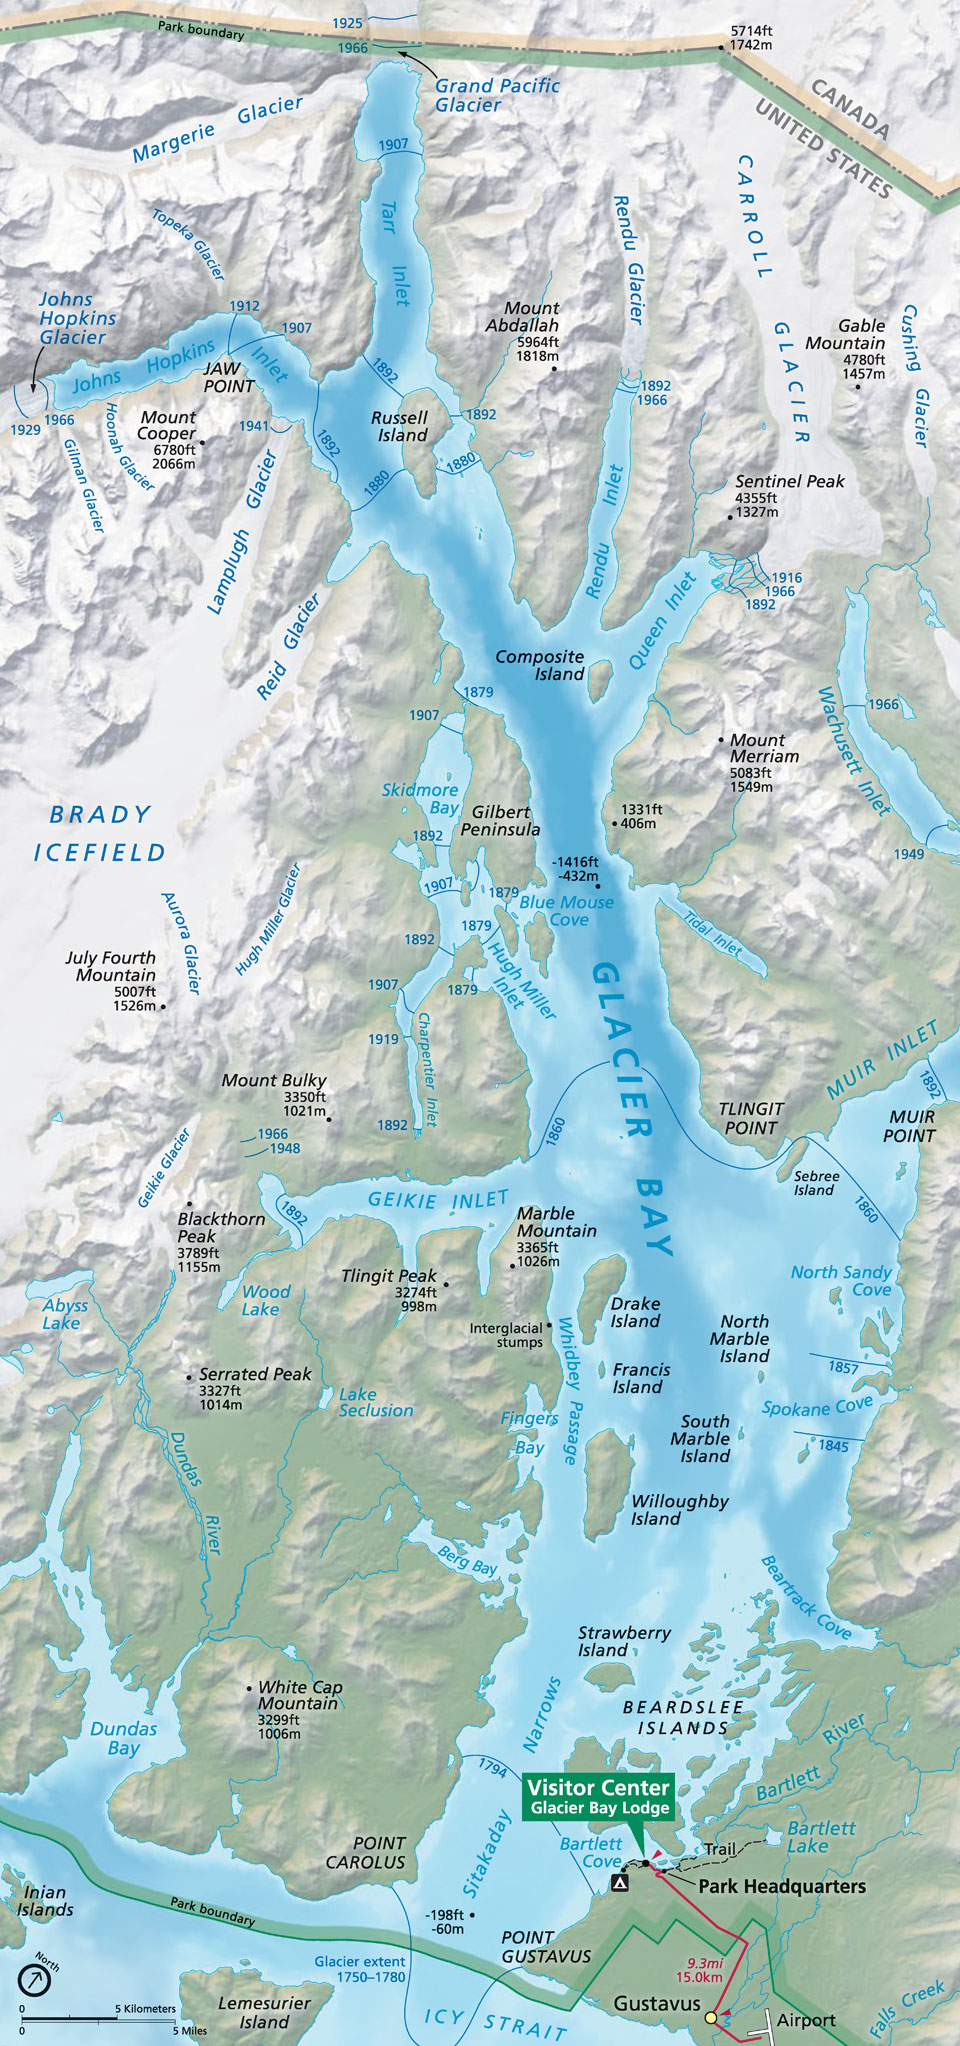 Maps Glacier Bay National Park & Preserve U S National Park Service